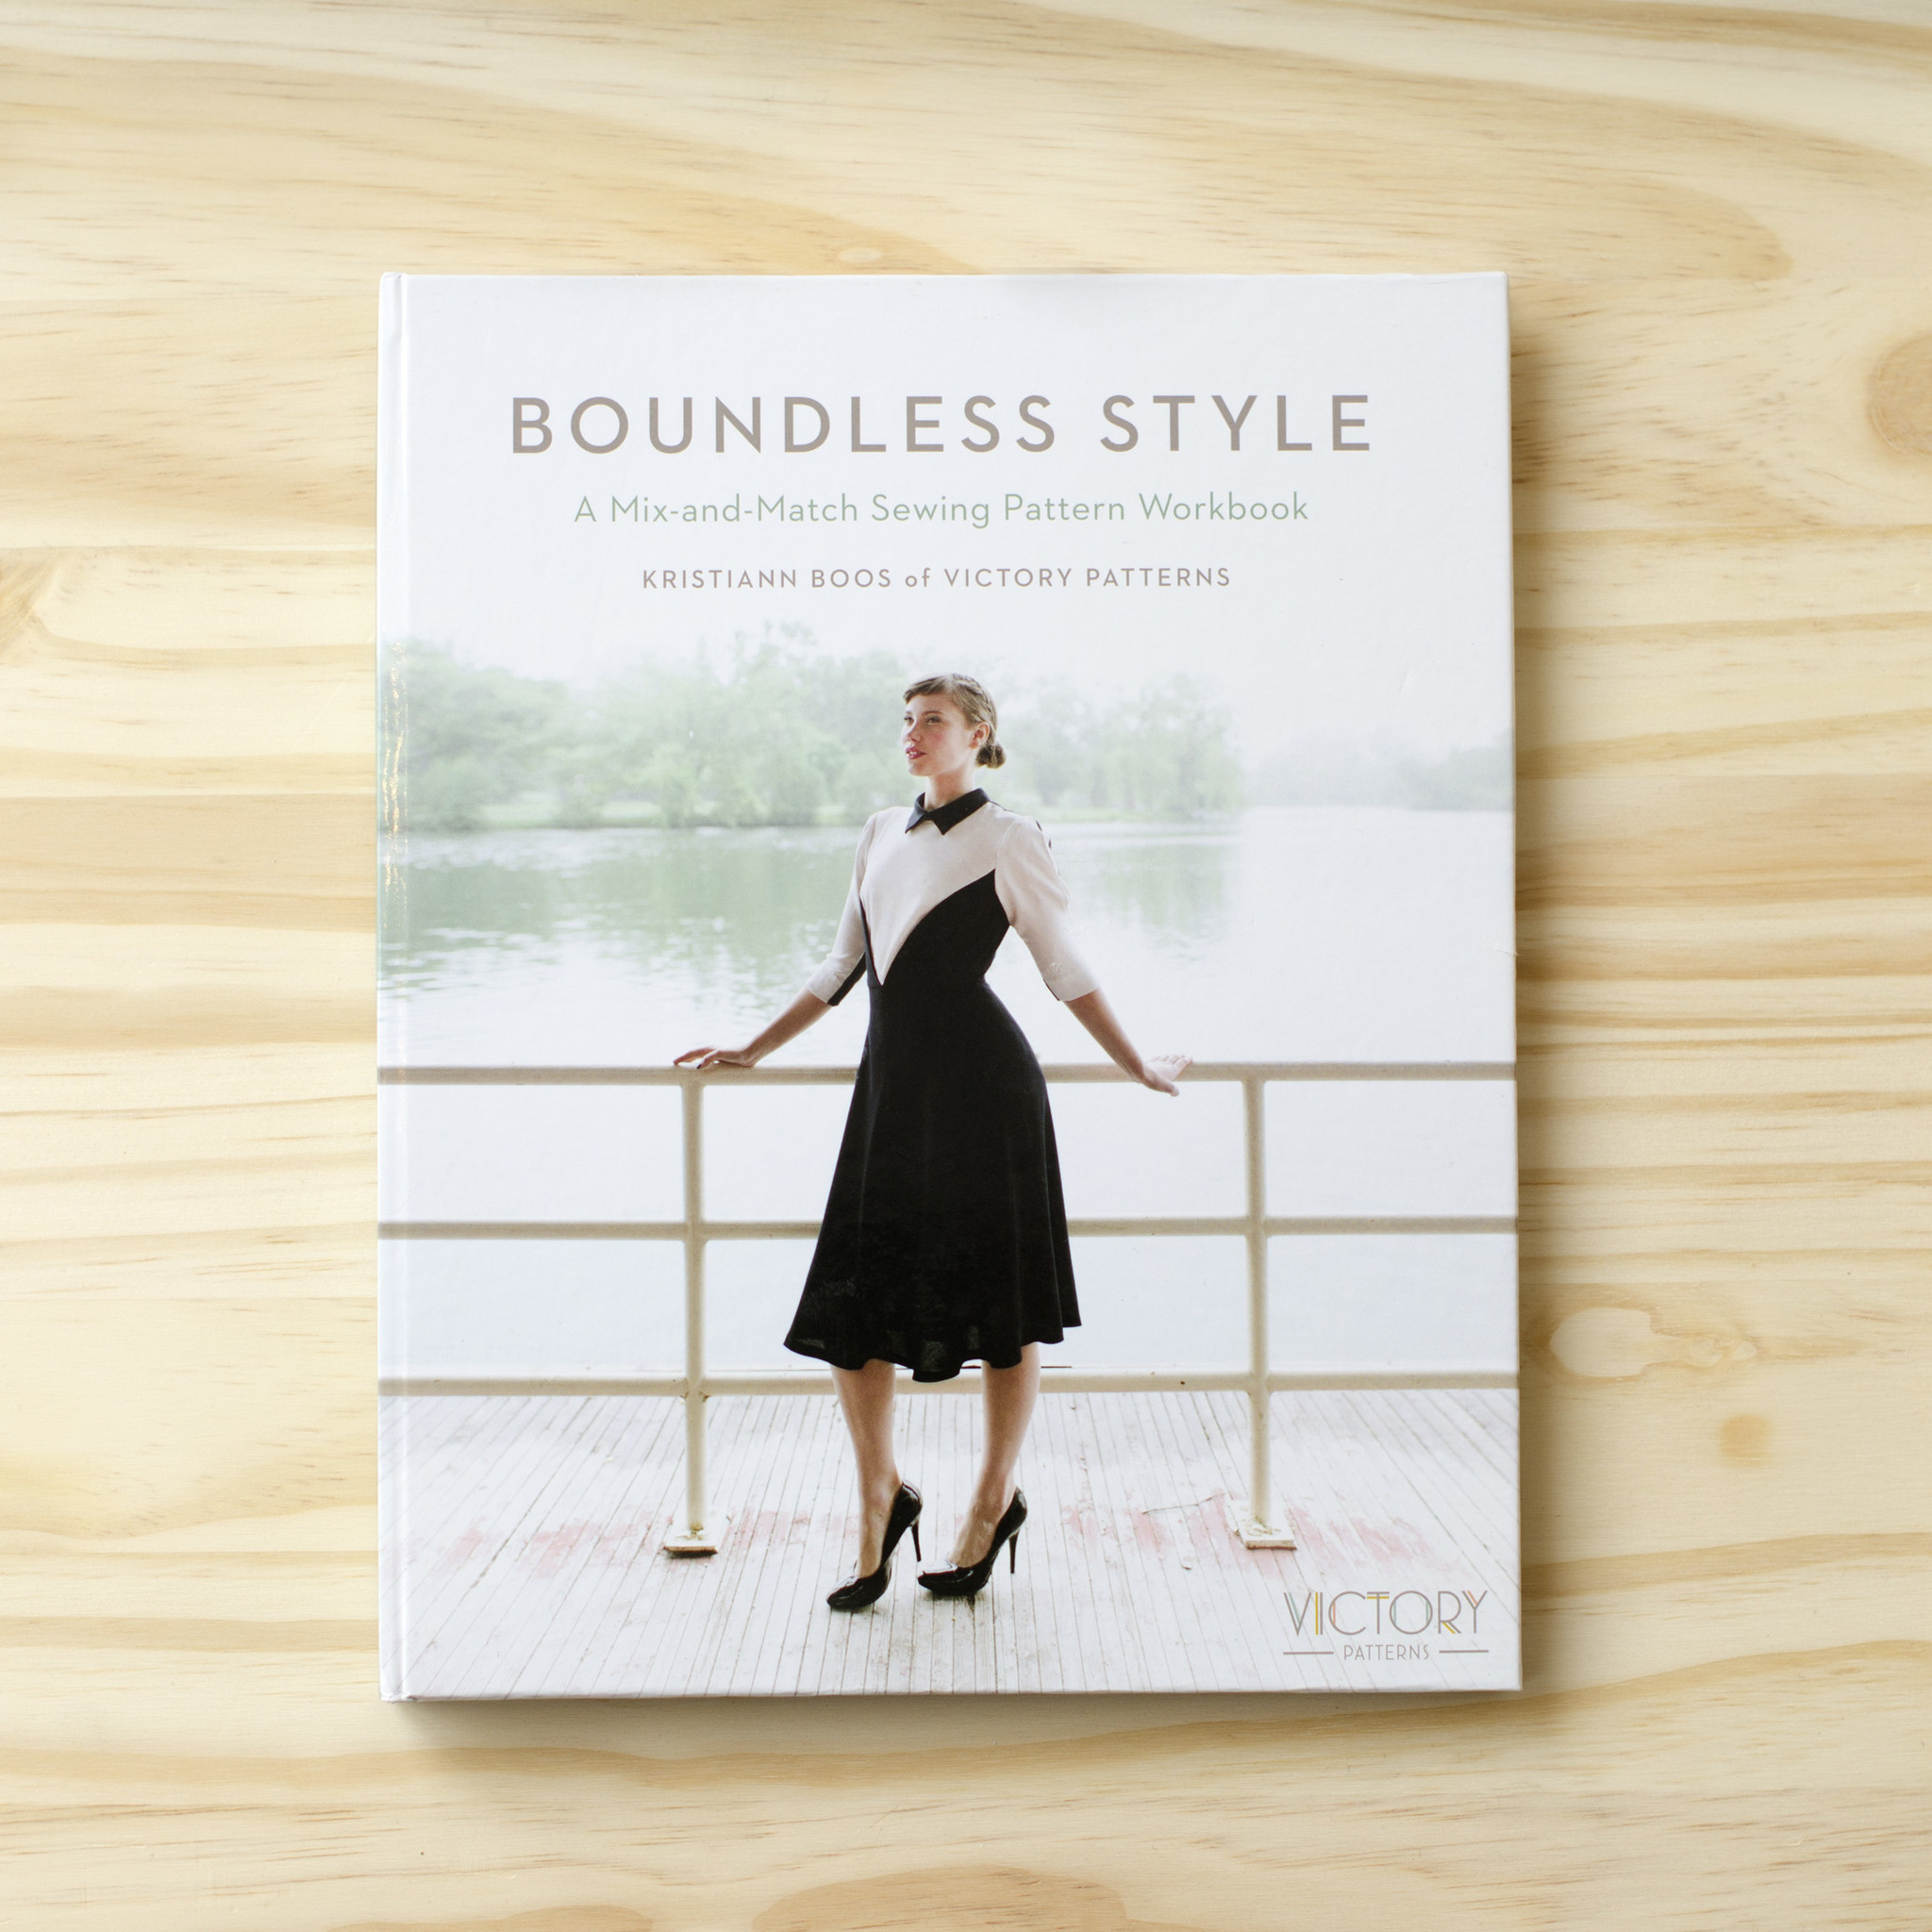 Boundless Style by Kristiann Boos